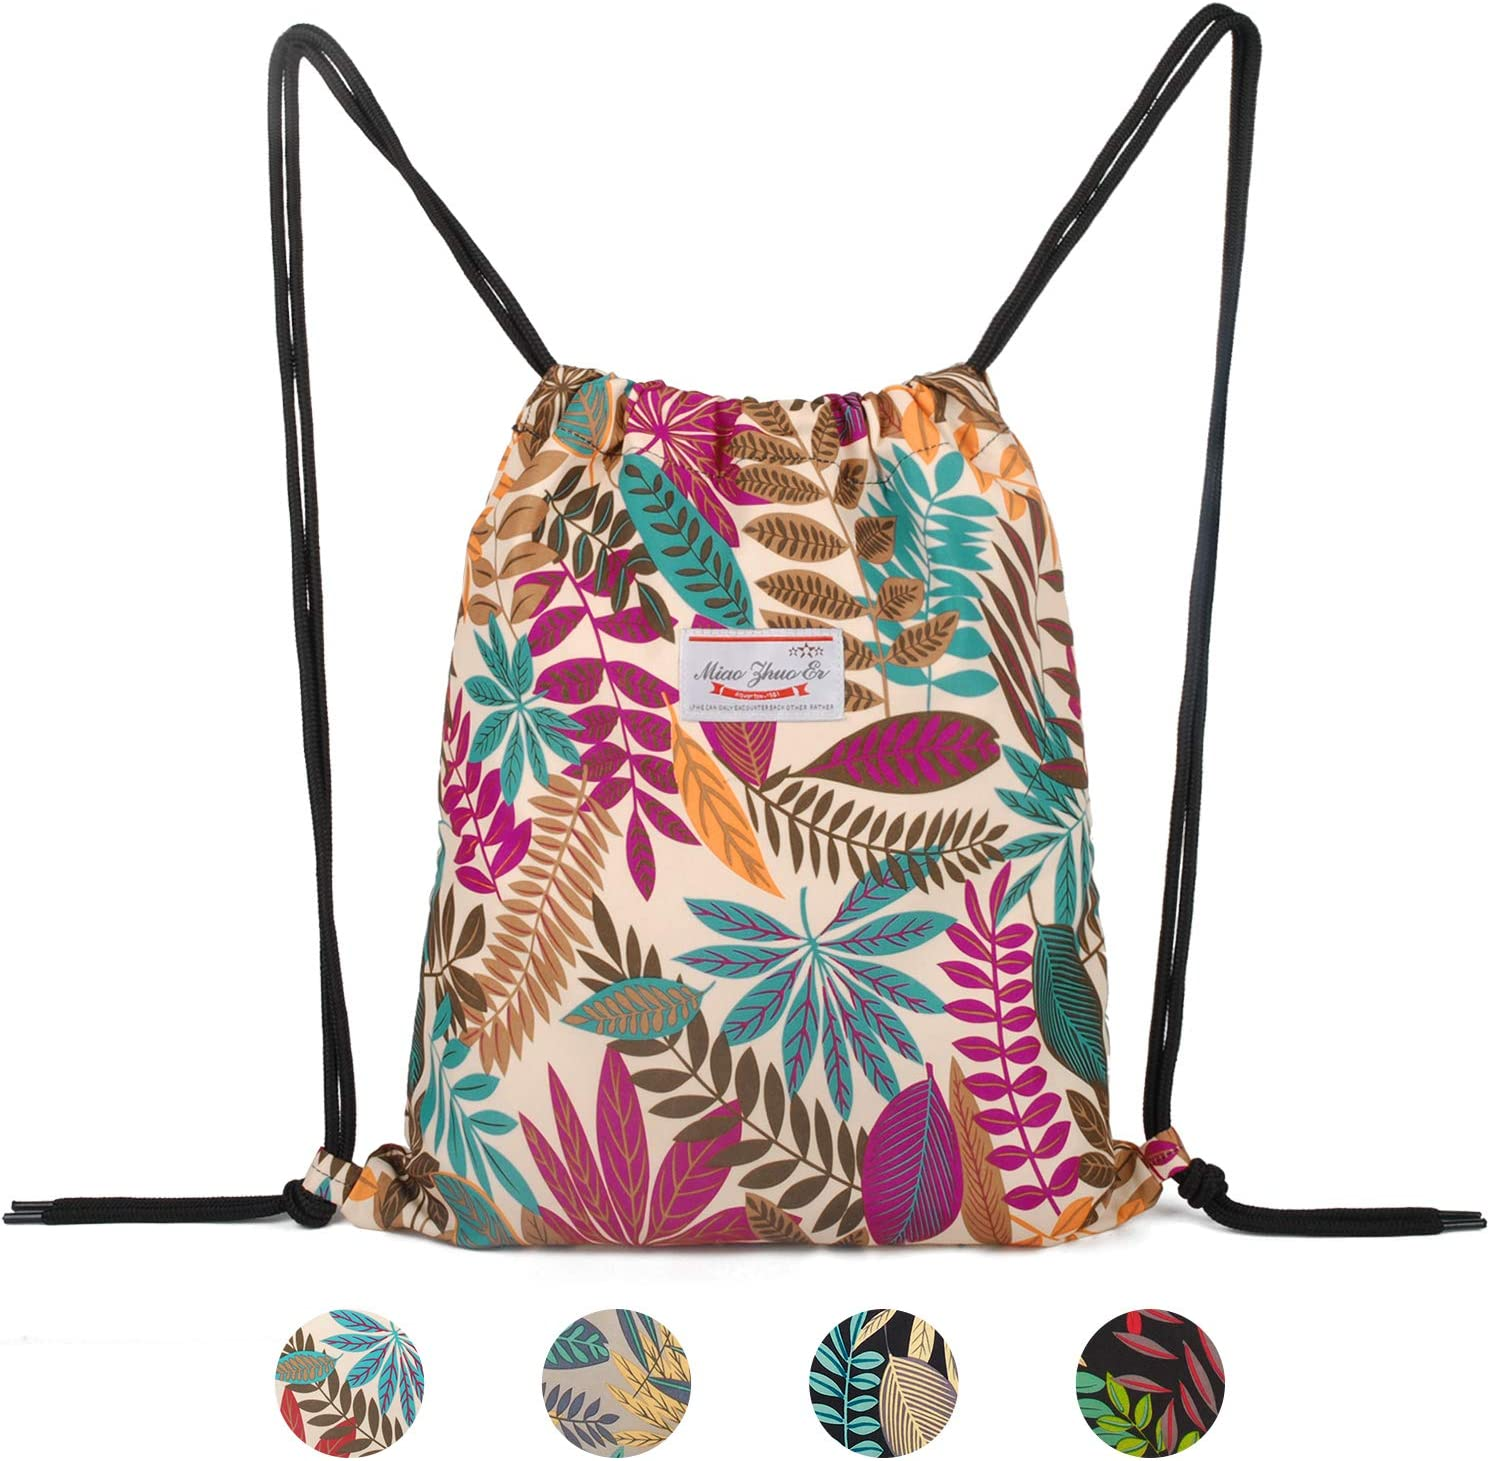 Presents Green Blue On White Drawstring Backpack Sports Athletic Gym Cinch Sack String Storage Bags for Hiking Travel Beach